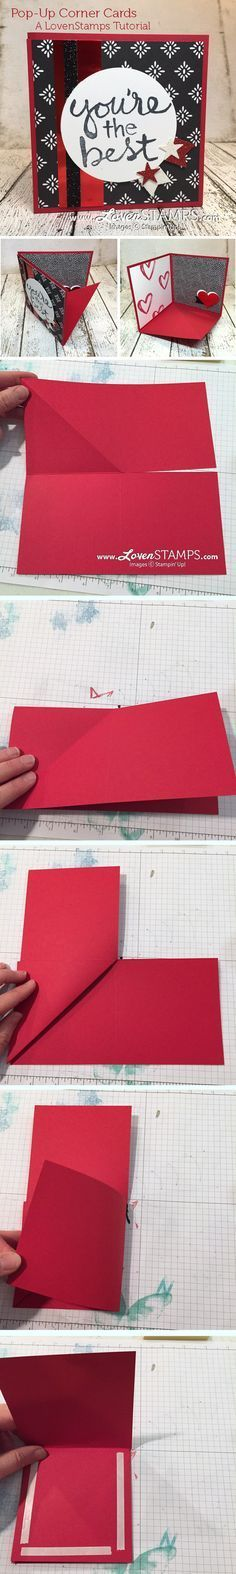 LovenStamps Video Tutorial: How to make a Pop-Up Corner Card, all supplies by Stampin' Up!, get your own project kit at LovenStamps.com with Stamps in the Mail Club